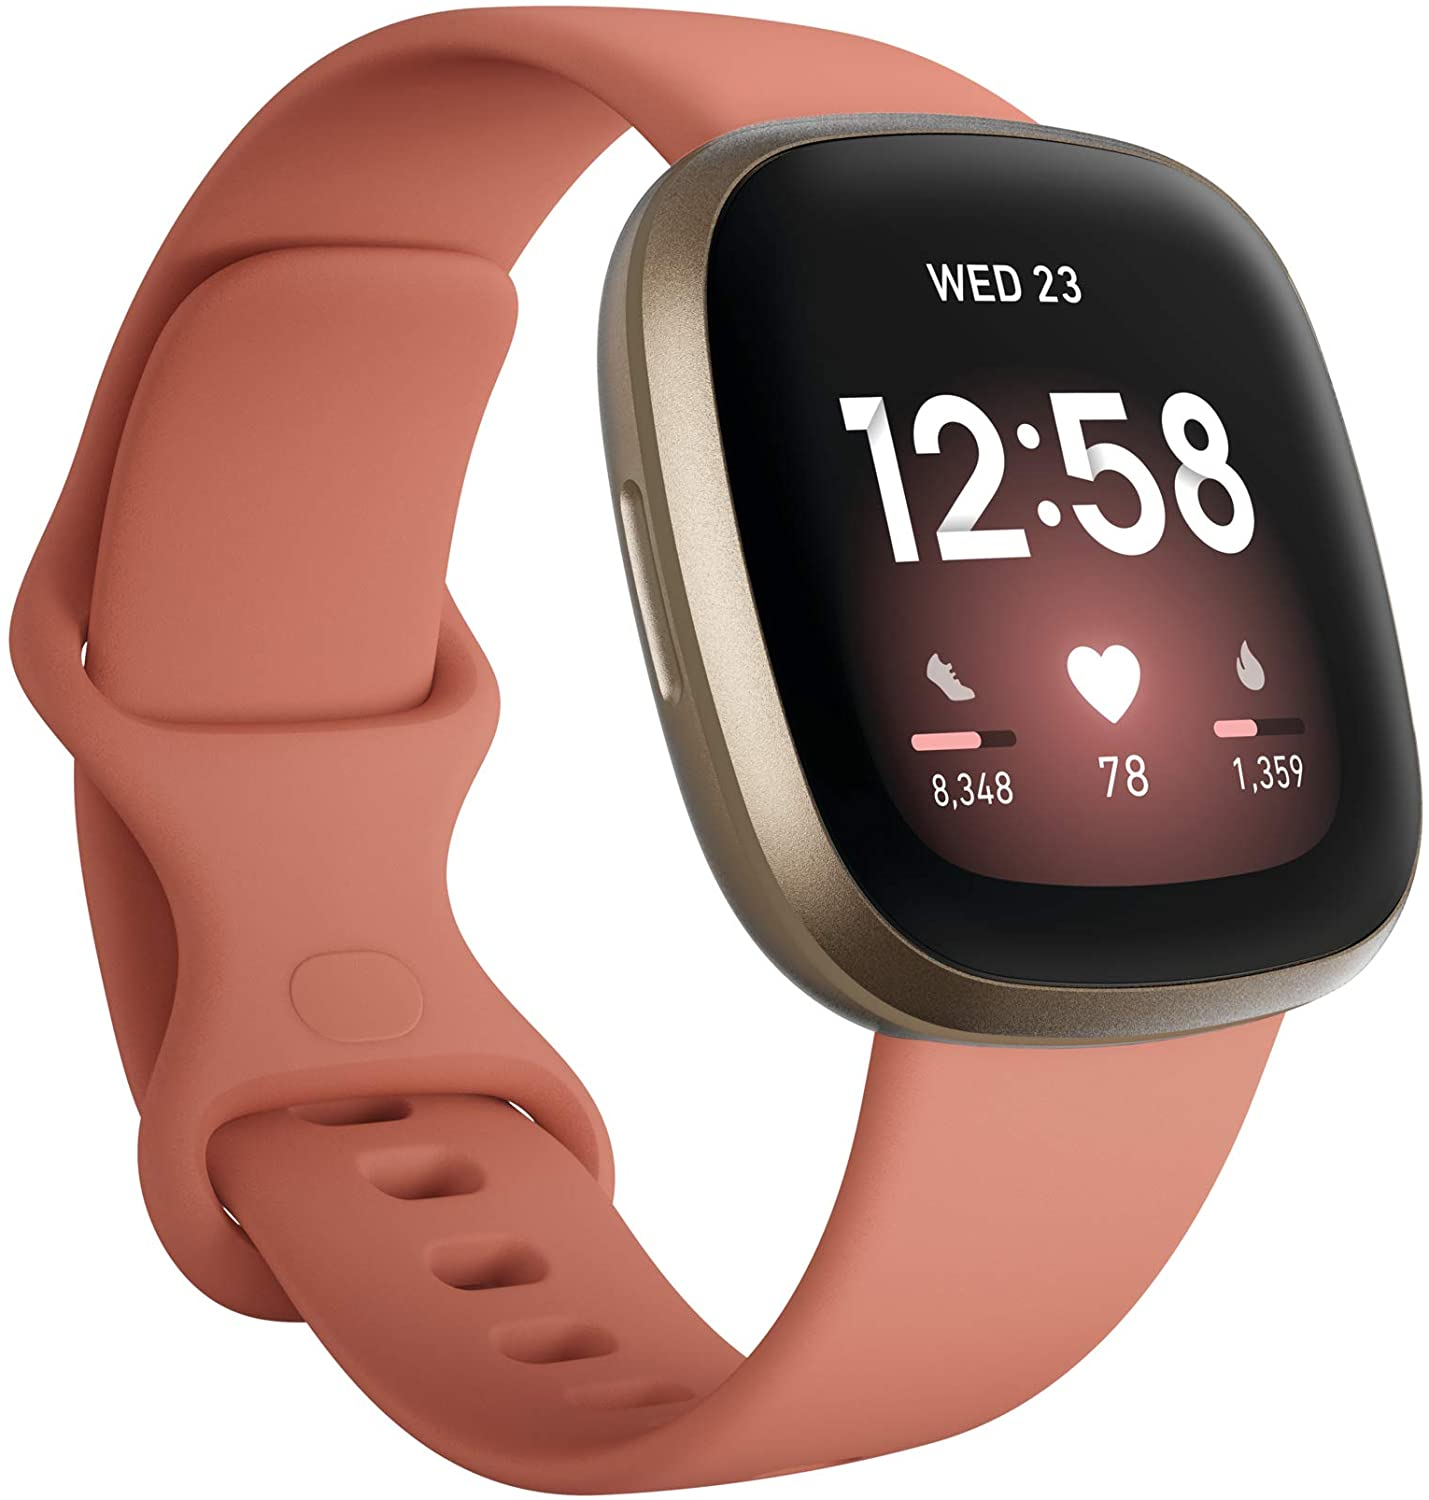 Amazon.com: Fitbit Versa 3 Health & Fitness Smartwatch with GPS, 24/7 Heart Rate, Alexa Built-in, 6+ Days Battery, Pink/Gold, One Size (S & L Bands Included): Health & Personal Care